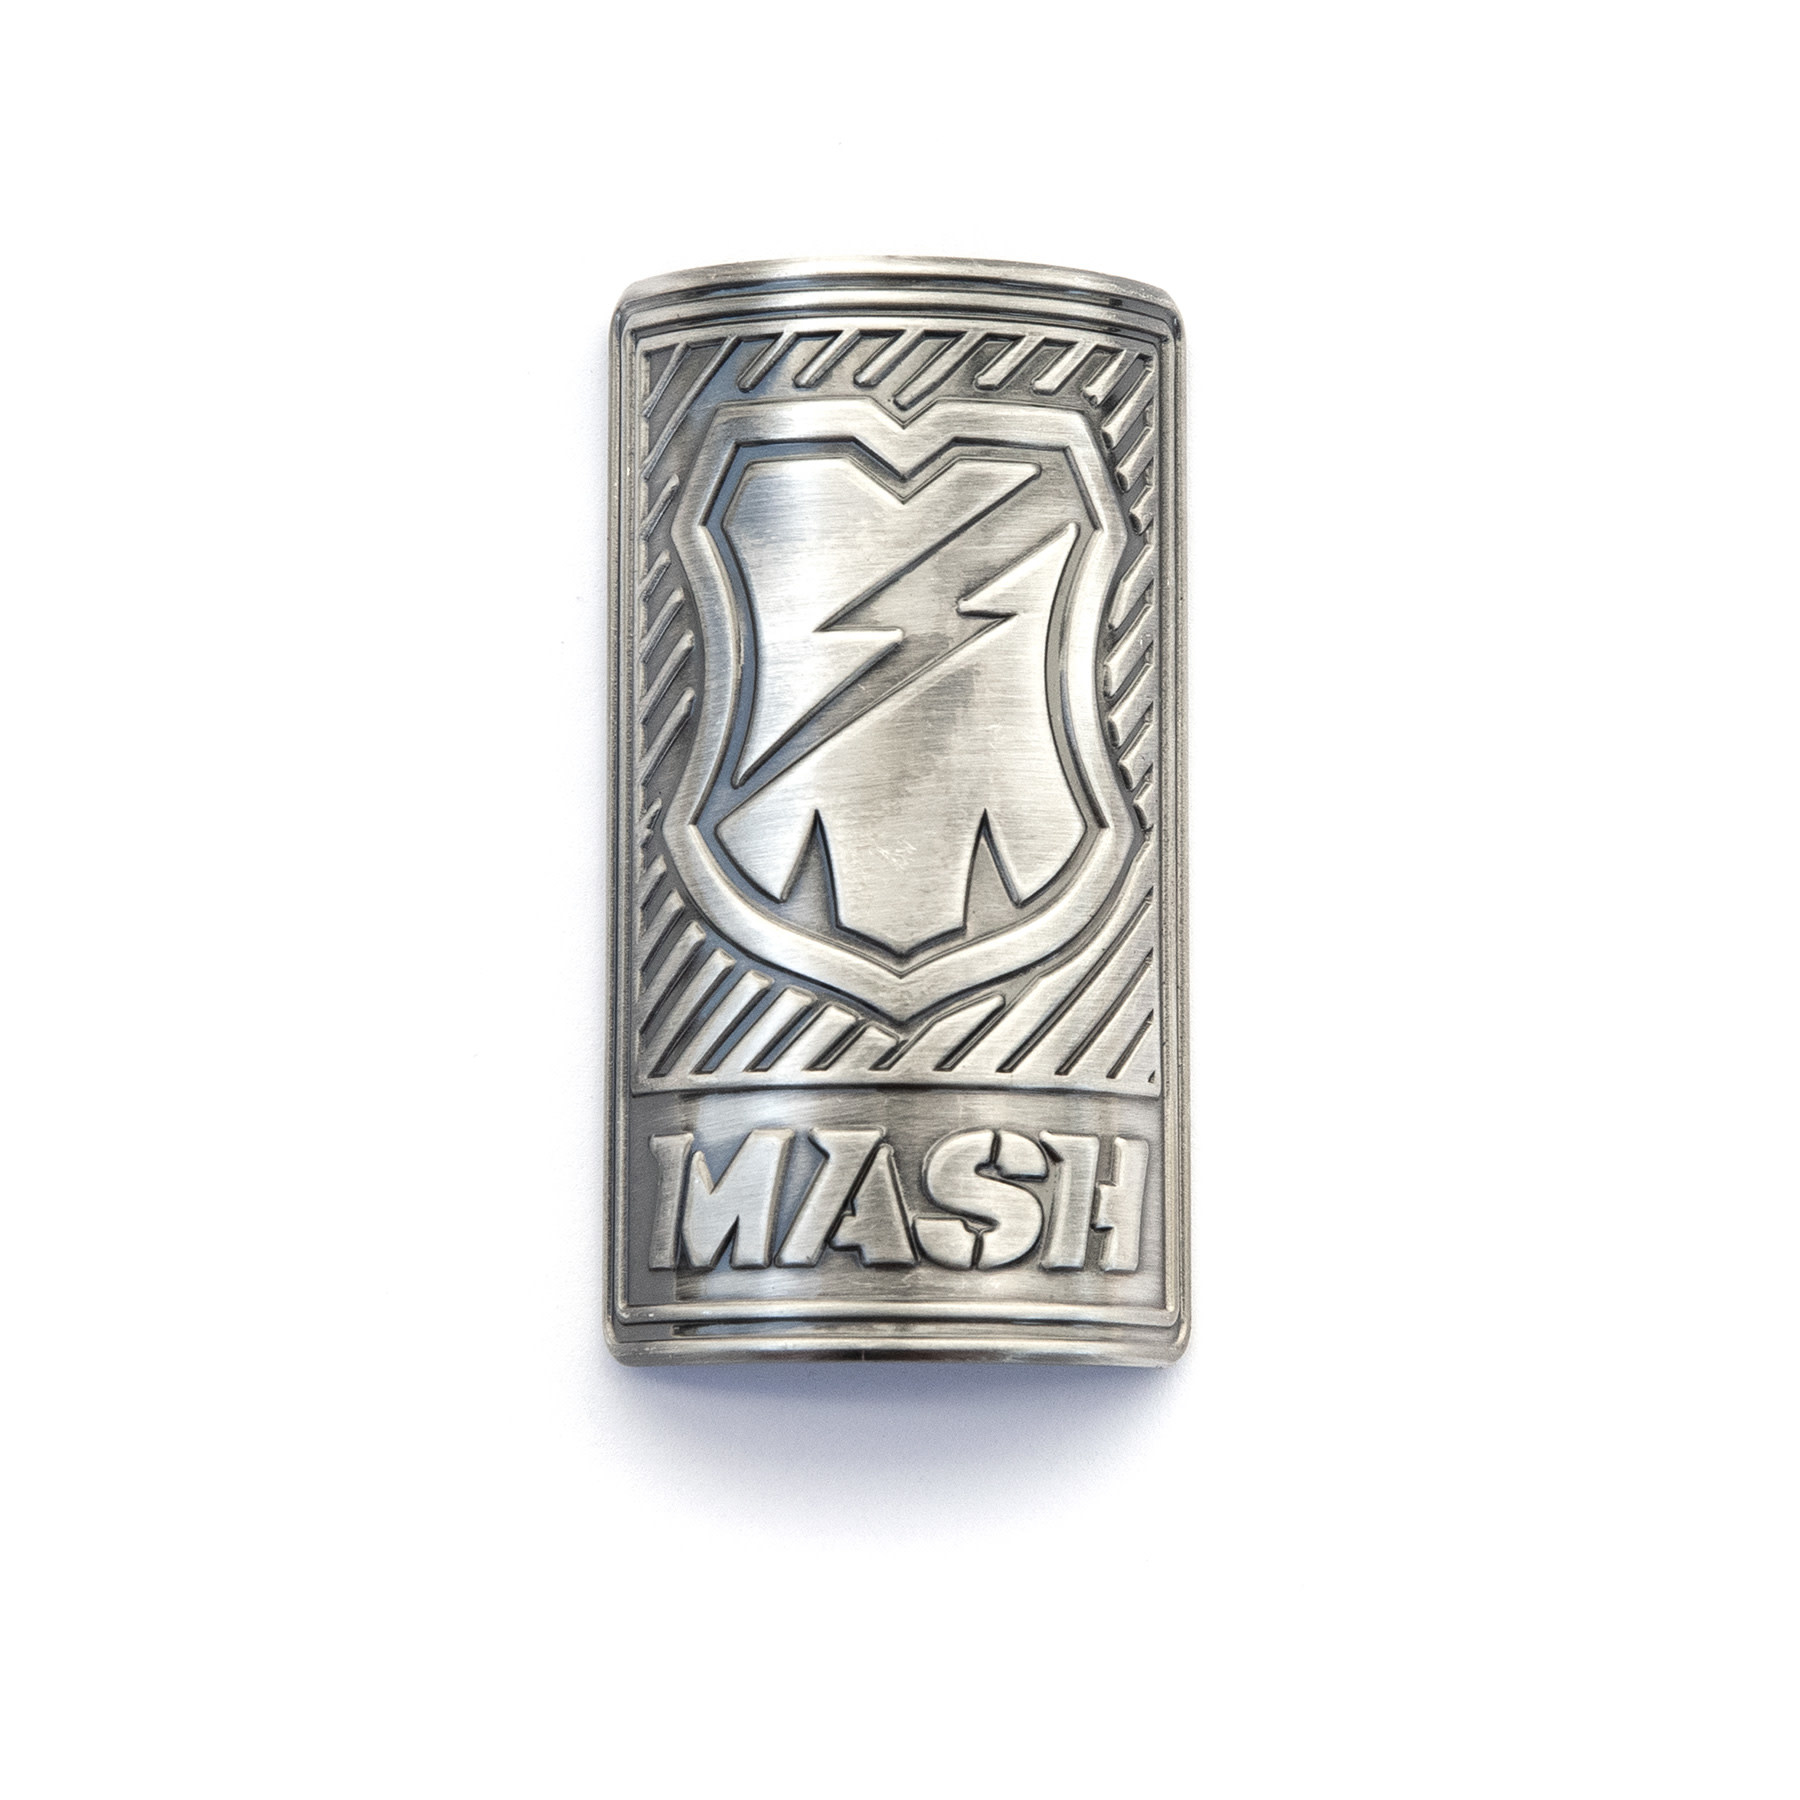 MASH 1 1/8 Headbadge Brass